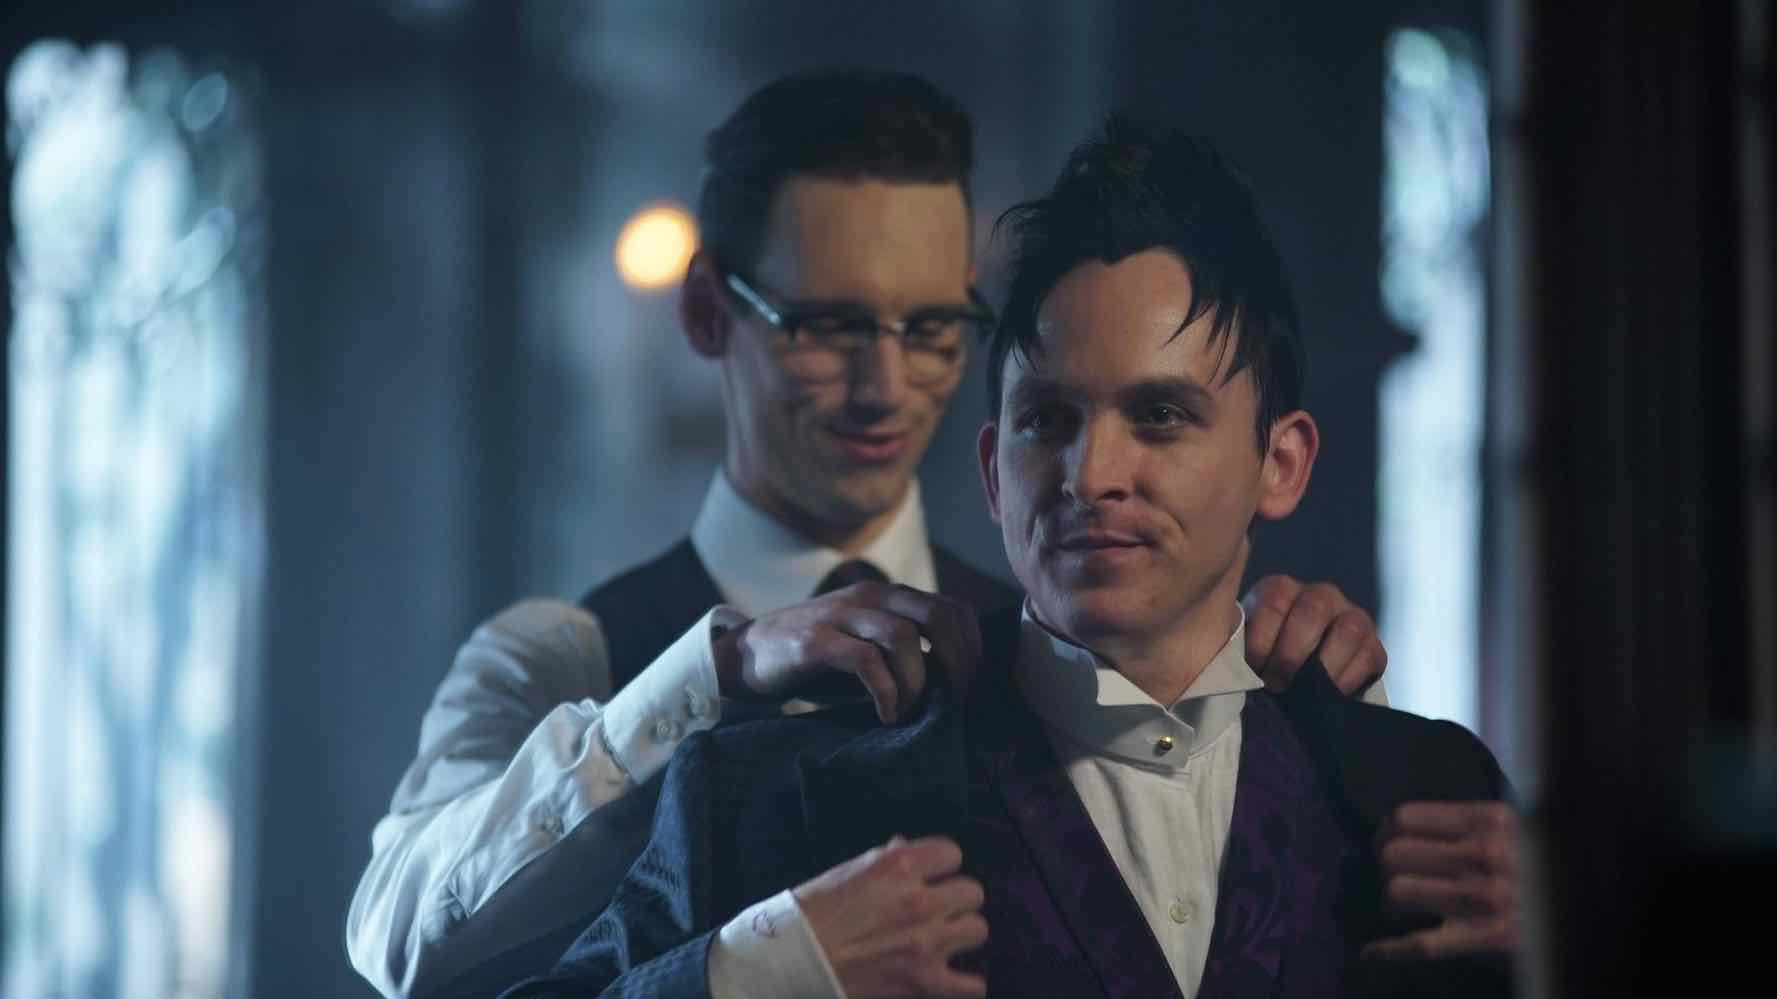 Here's why we and the 'Gotham' fandom ship hard for Nygmobblepot, and why these fantastic felons are anyone's perfect gateway into 'Gotham'.